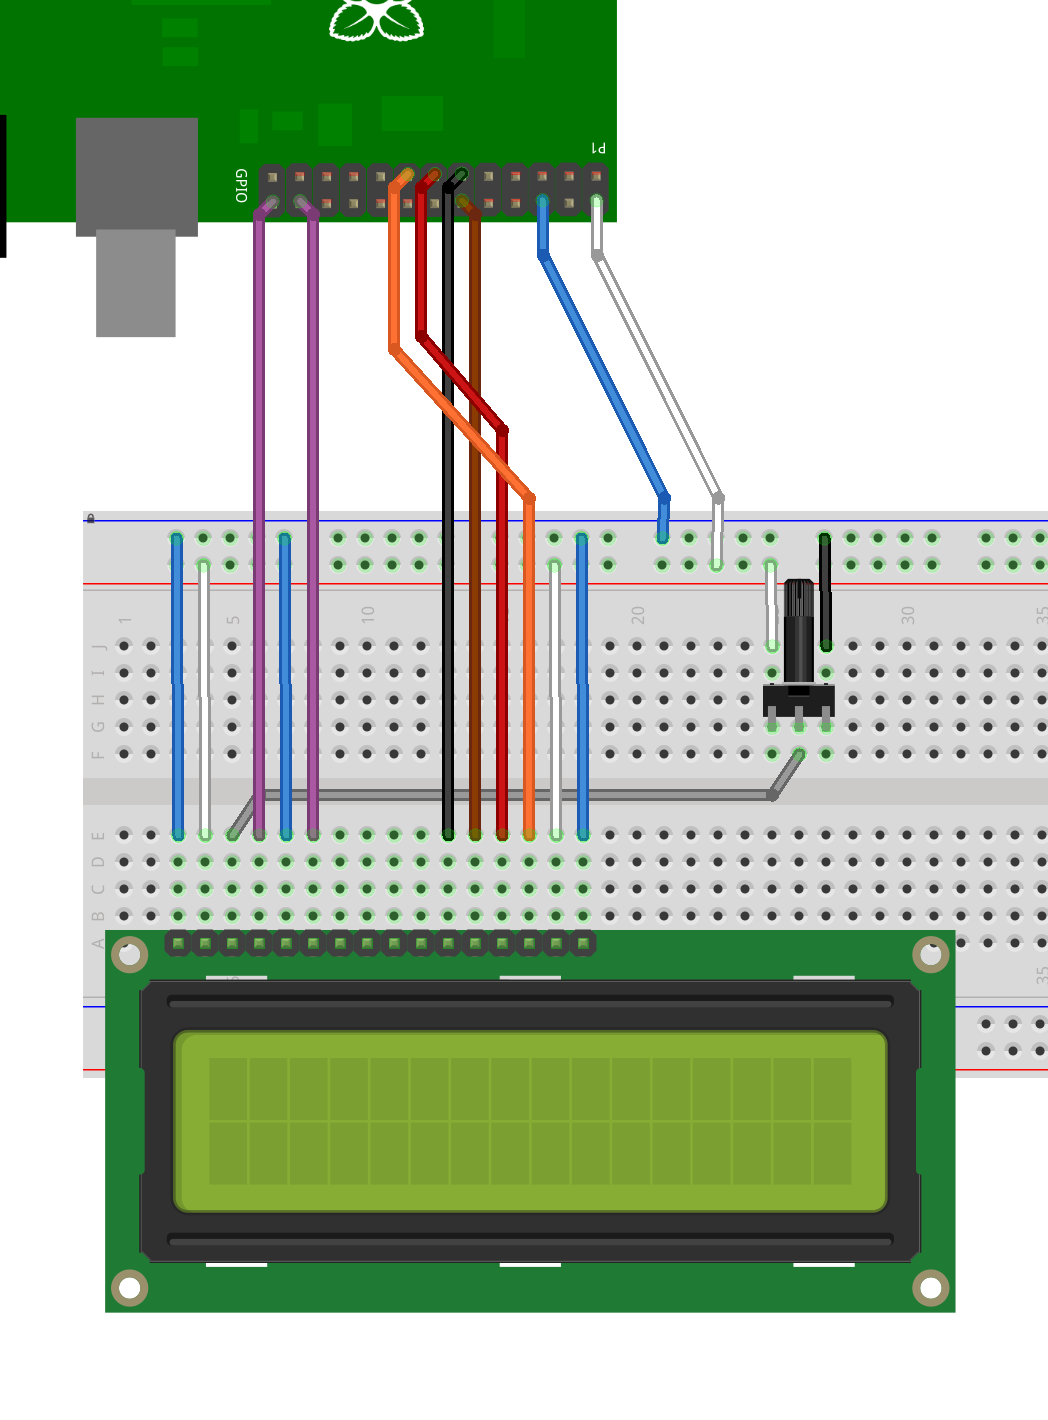 Simple Electrical Electronics Projects Library Lcd Gordons Connected To Pi In 4 Bit Mode